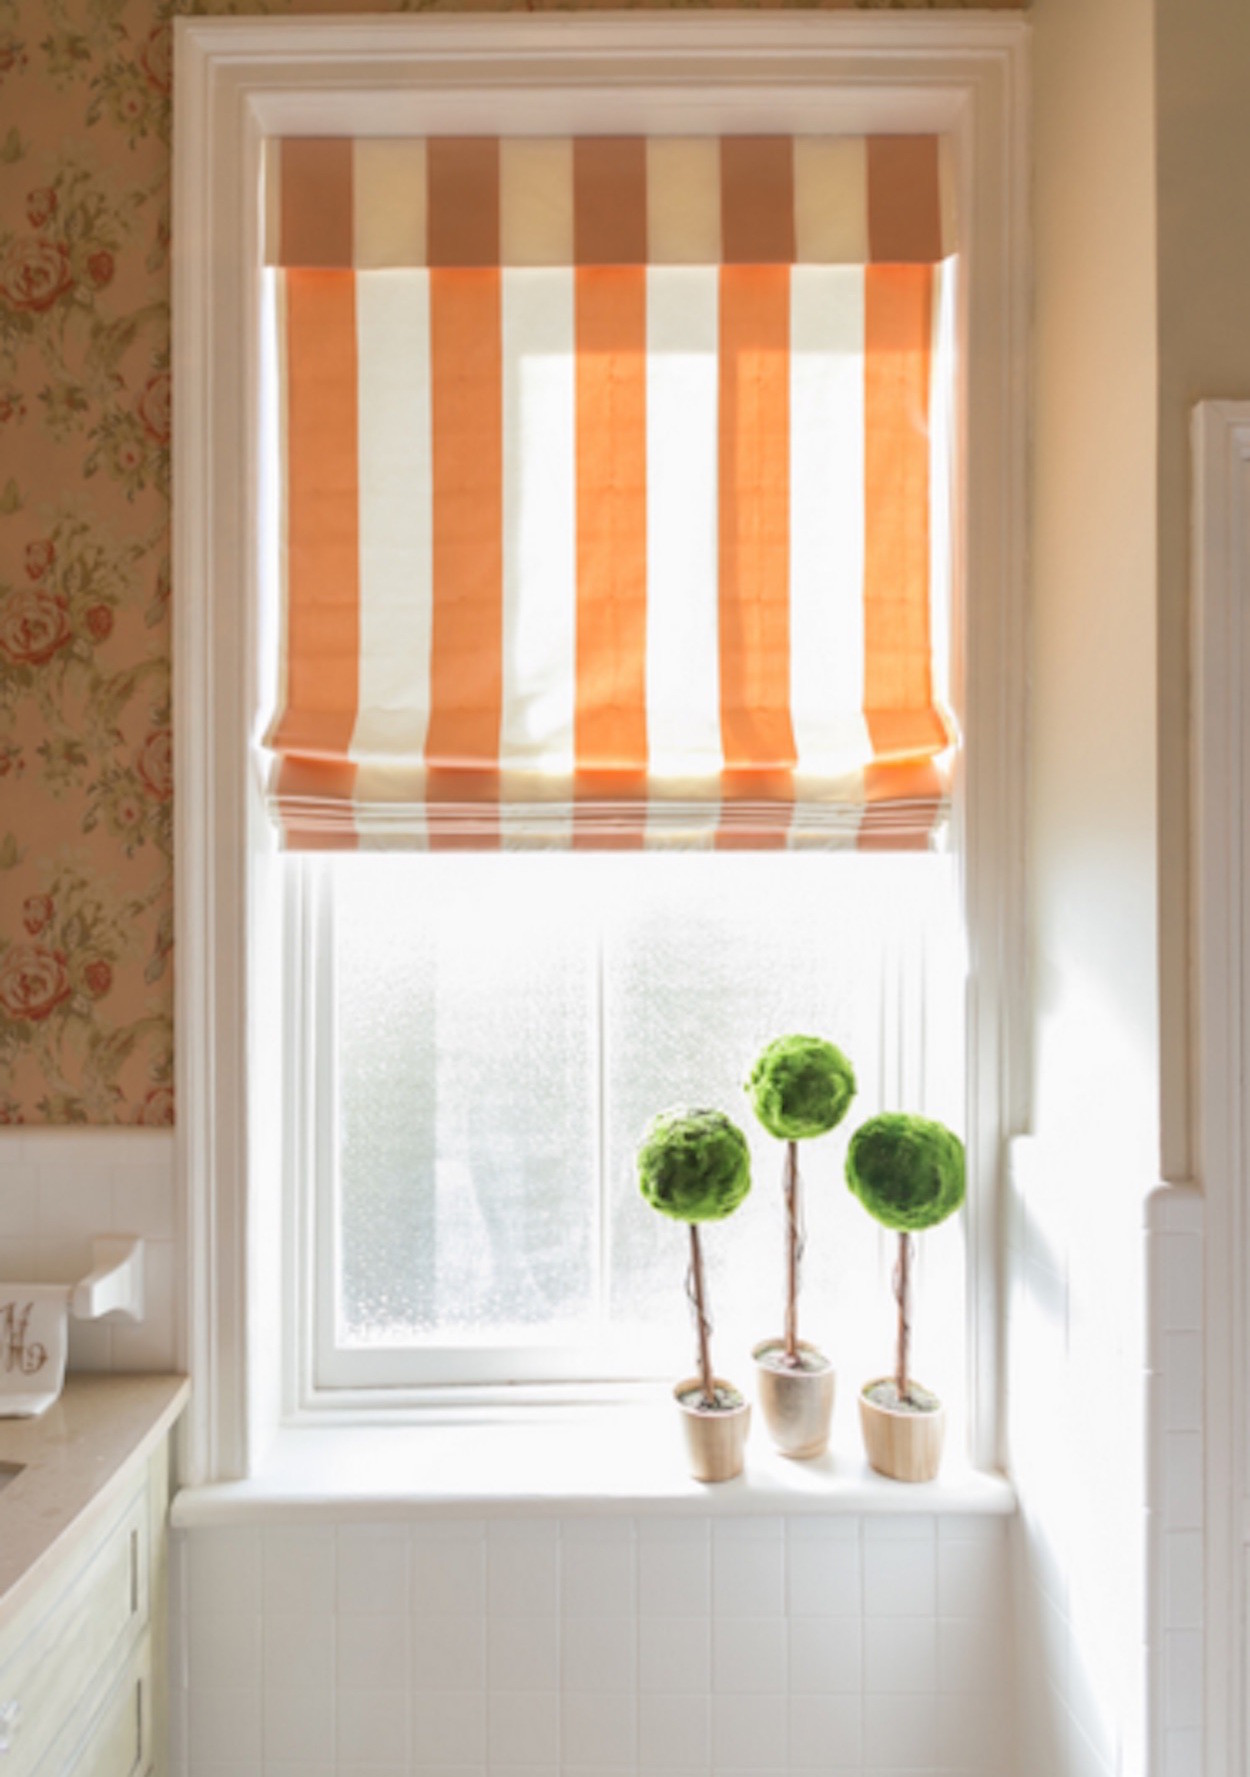 7 Different Bathroom Window Treatments You Might Not Have Better Home And  Garden Living Room Ideas House And Garden Small Living Rooms